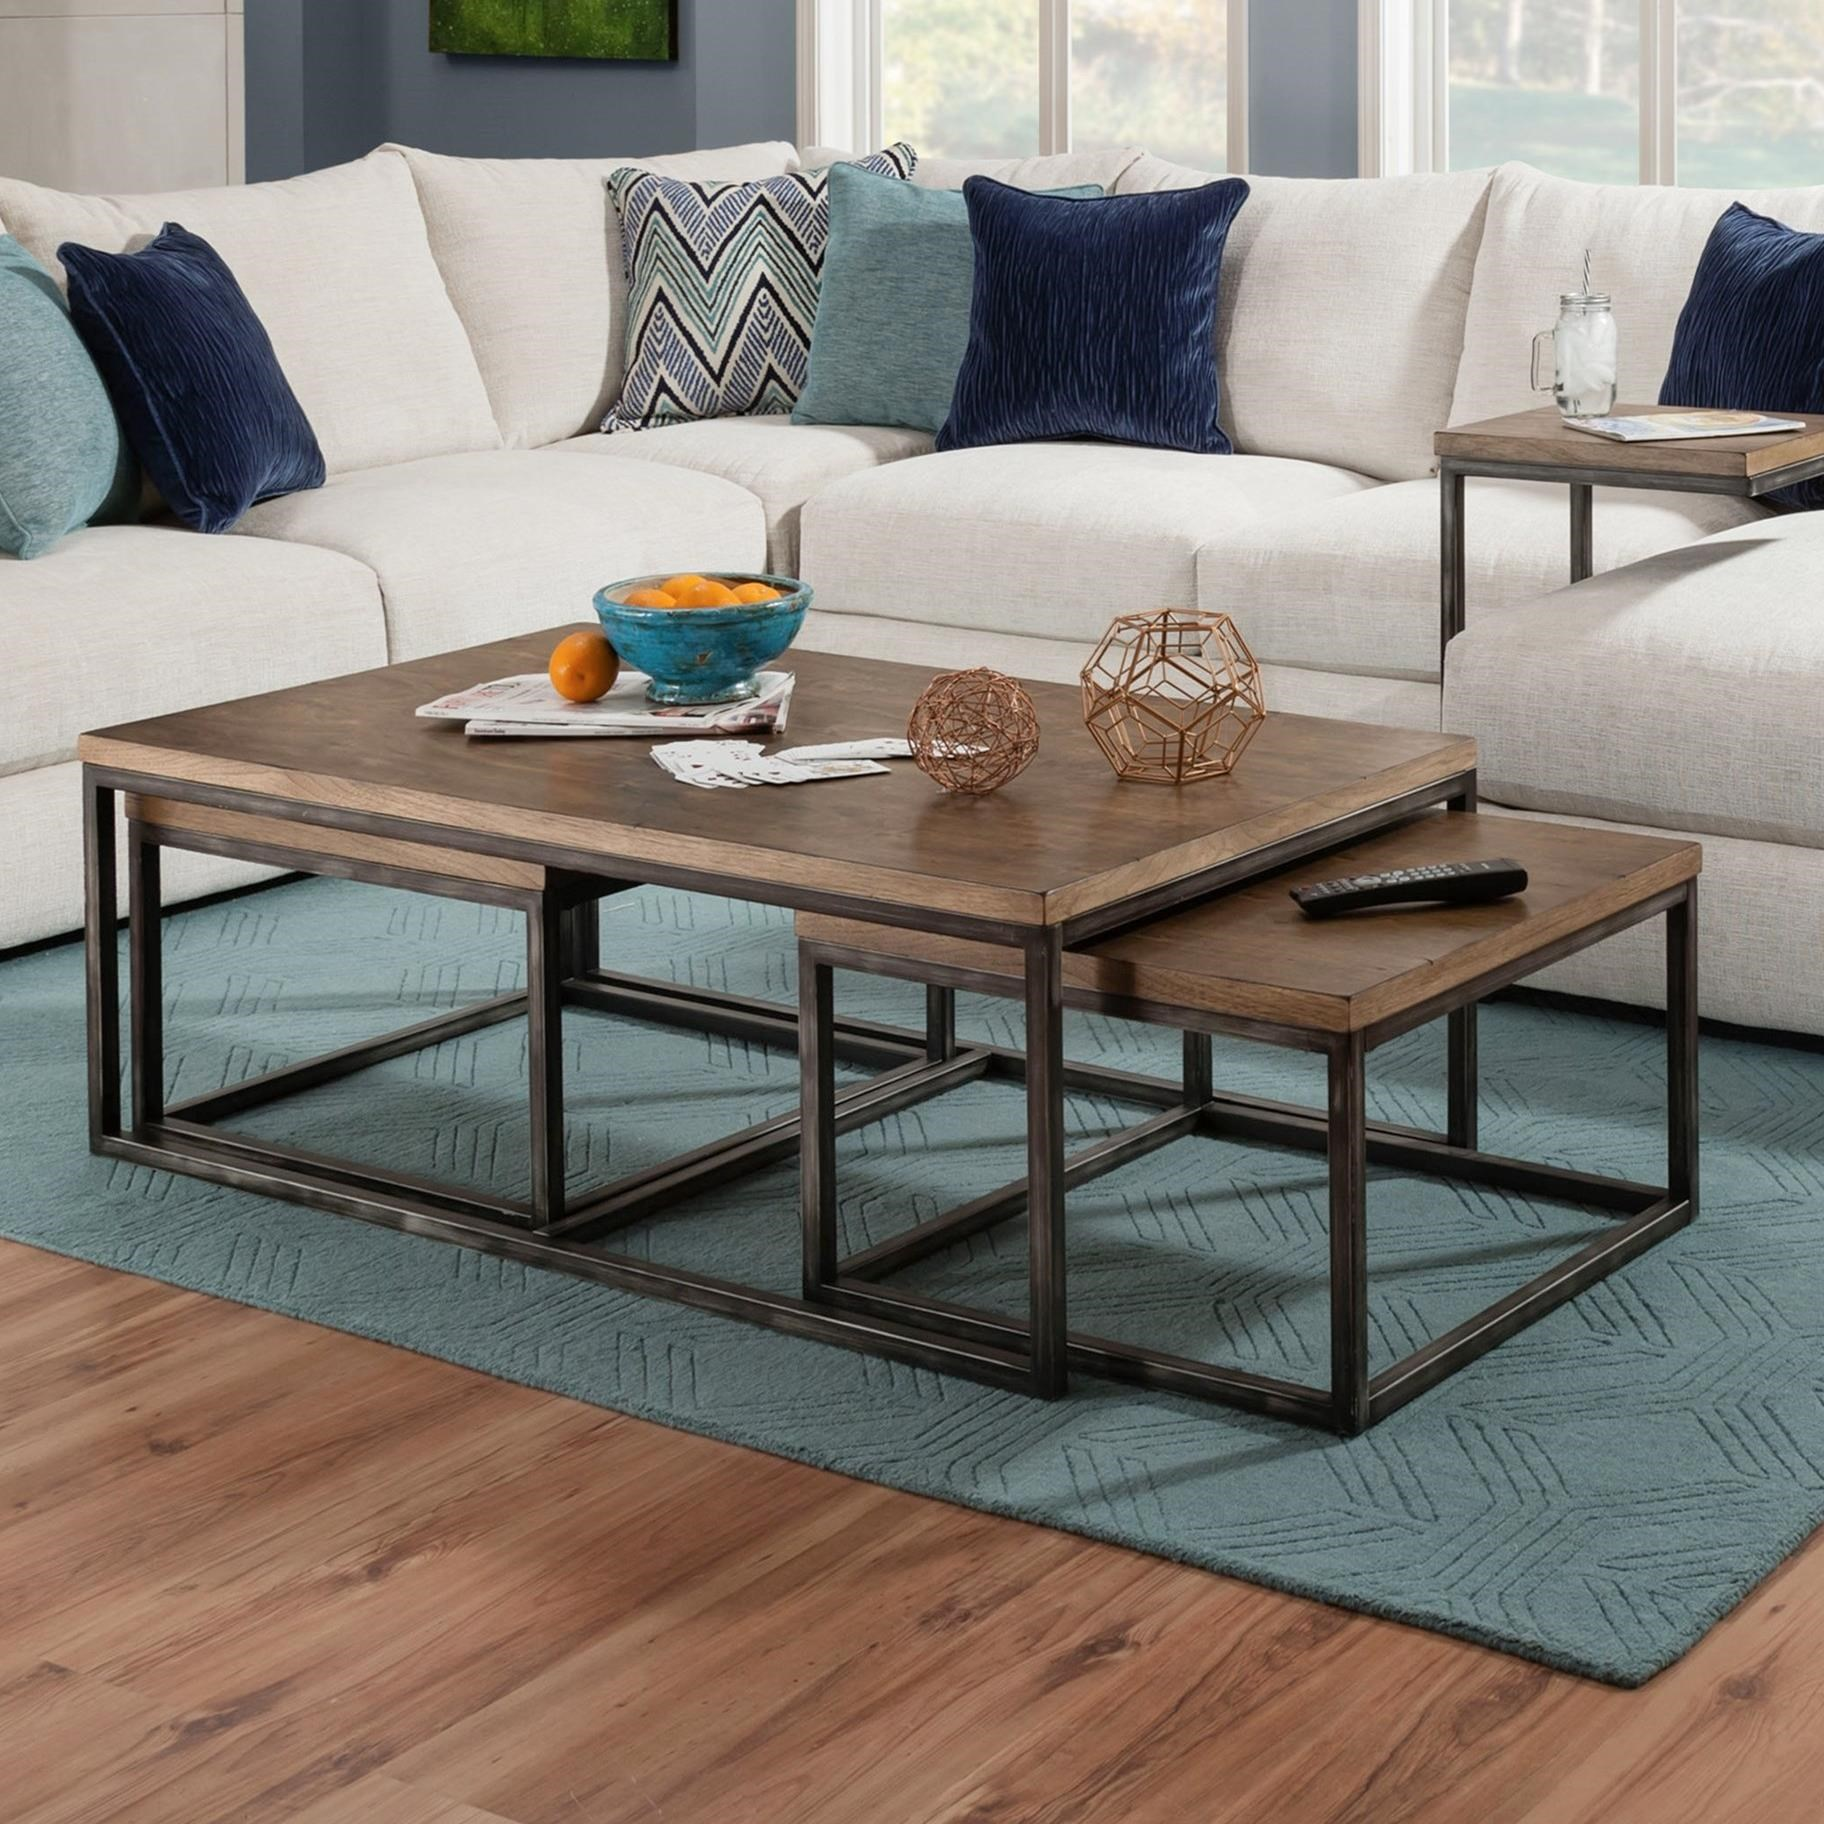 7326 Nesting Coffee Table by Simmons Upholstery at O'Dunk & O'Bright Furniture